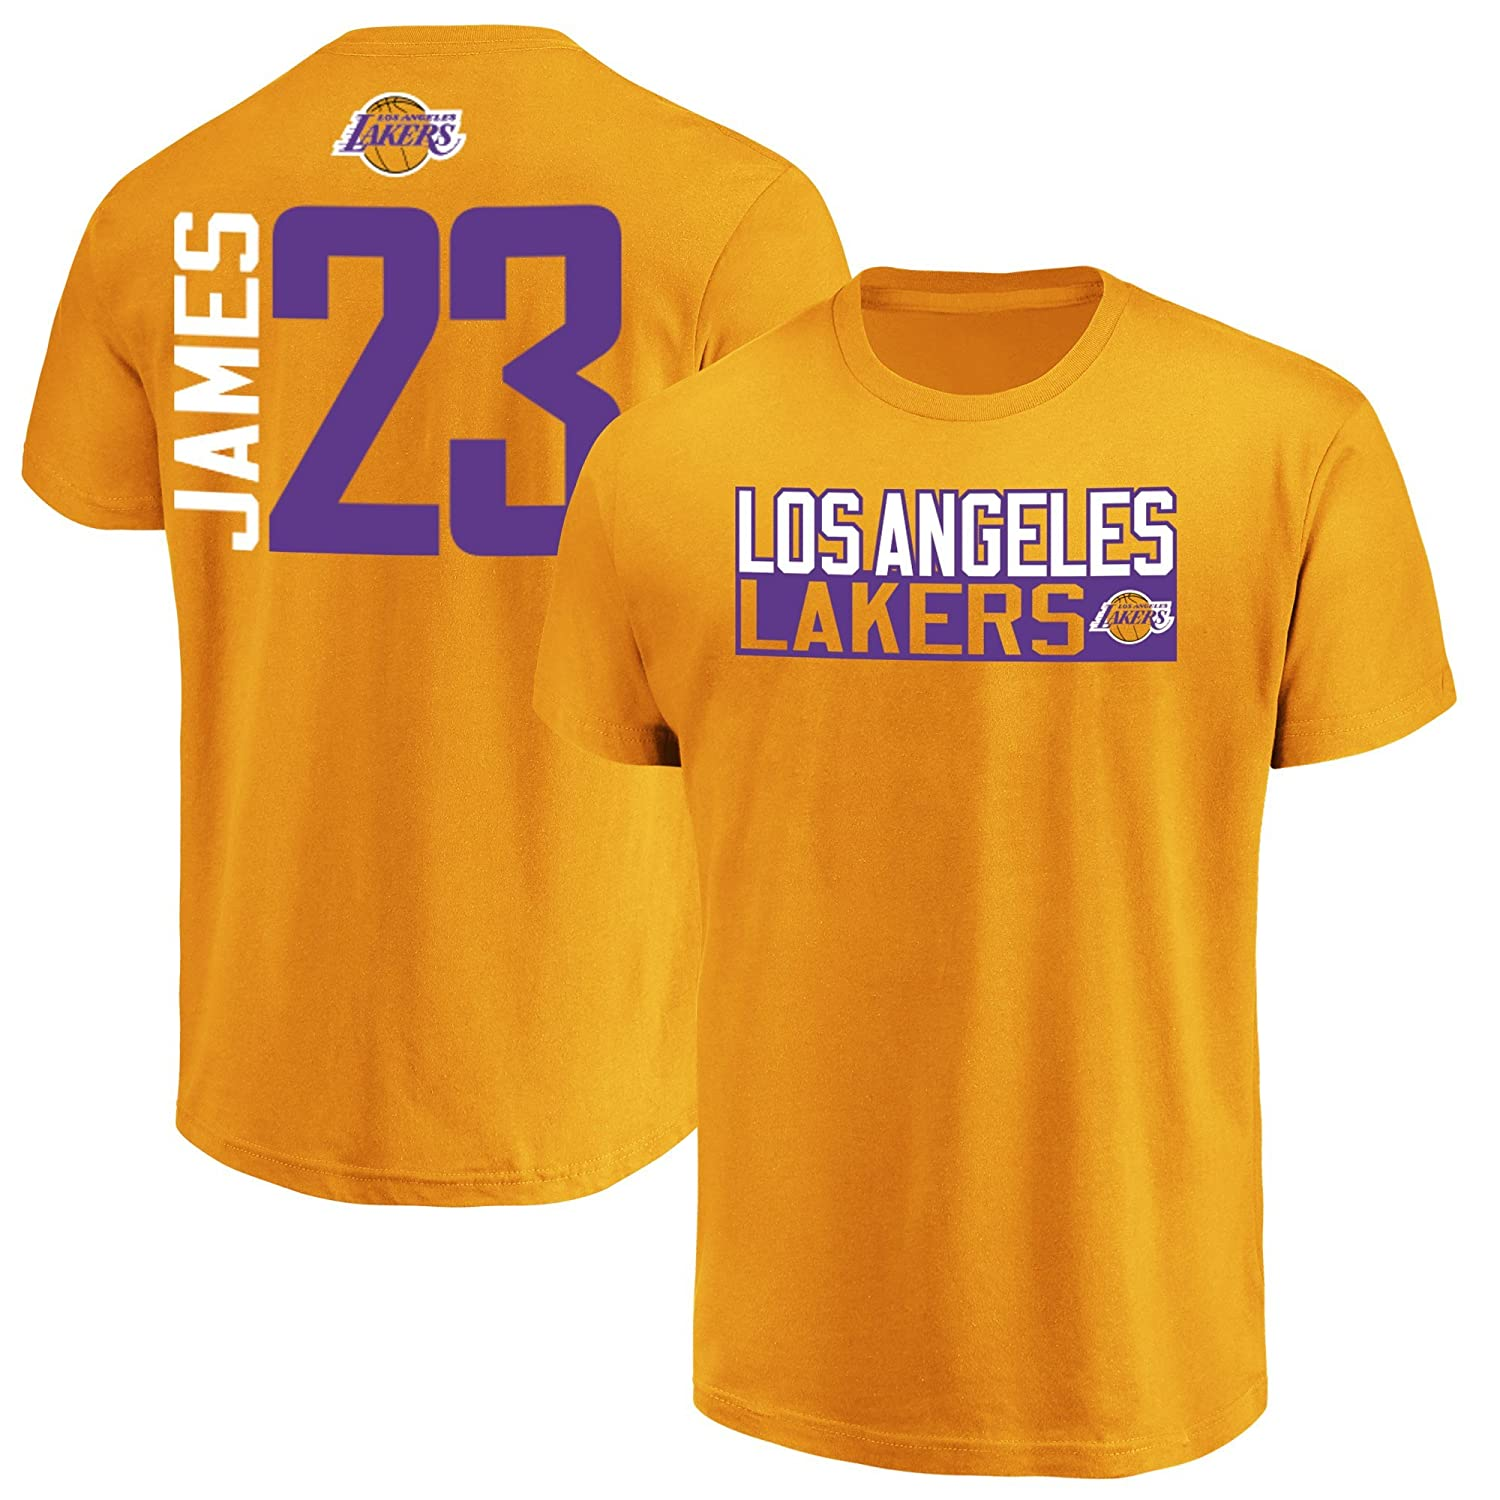 on sale b491b eb6f1 Majestic Lebron James Los Angeles Lakers #23 Men's Vertical Player T-Shirt